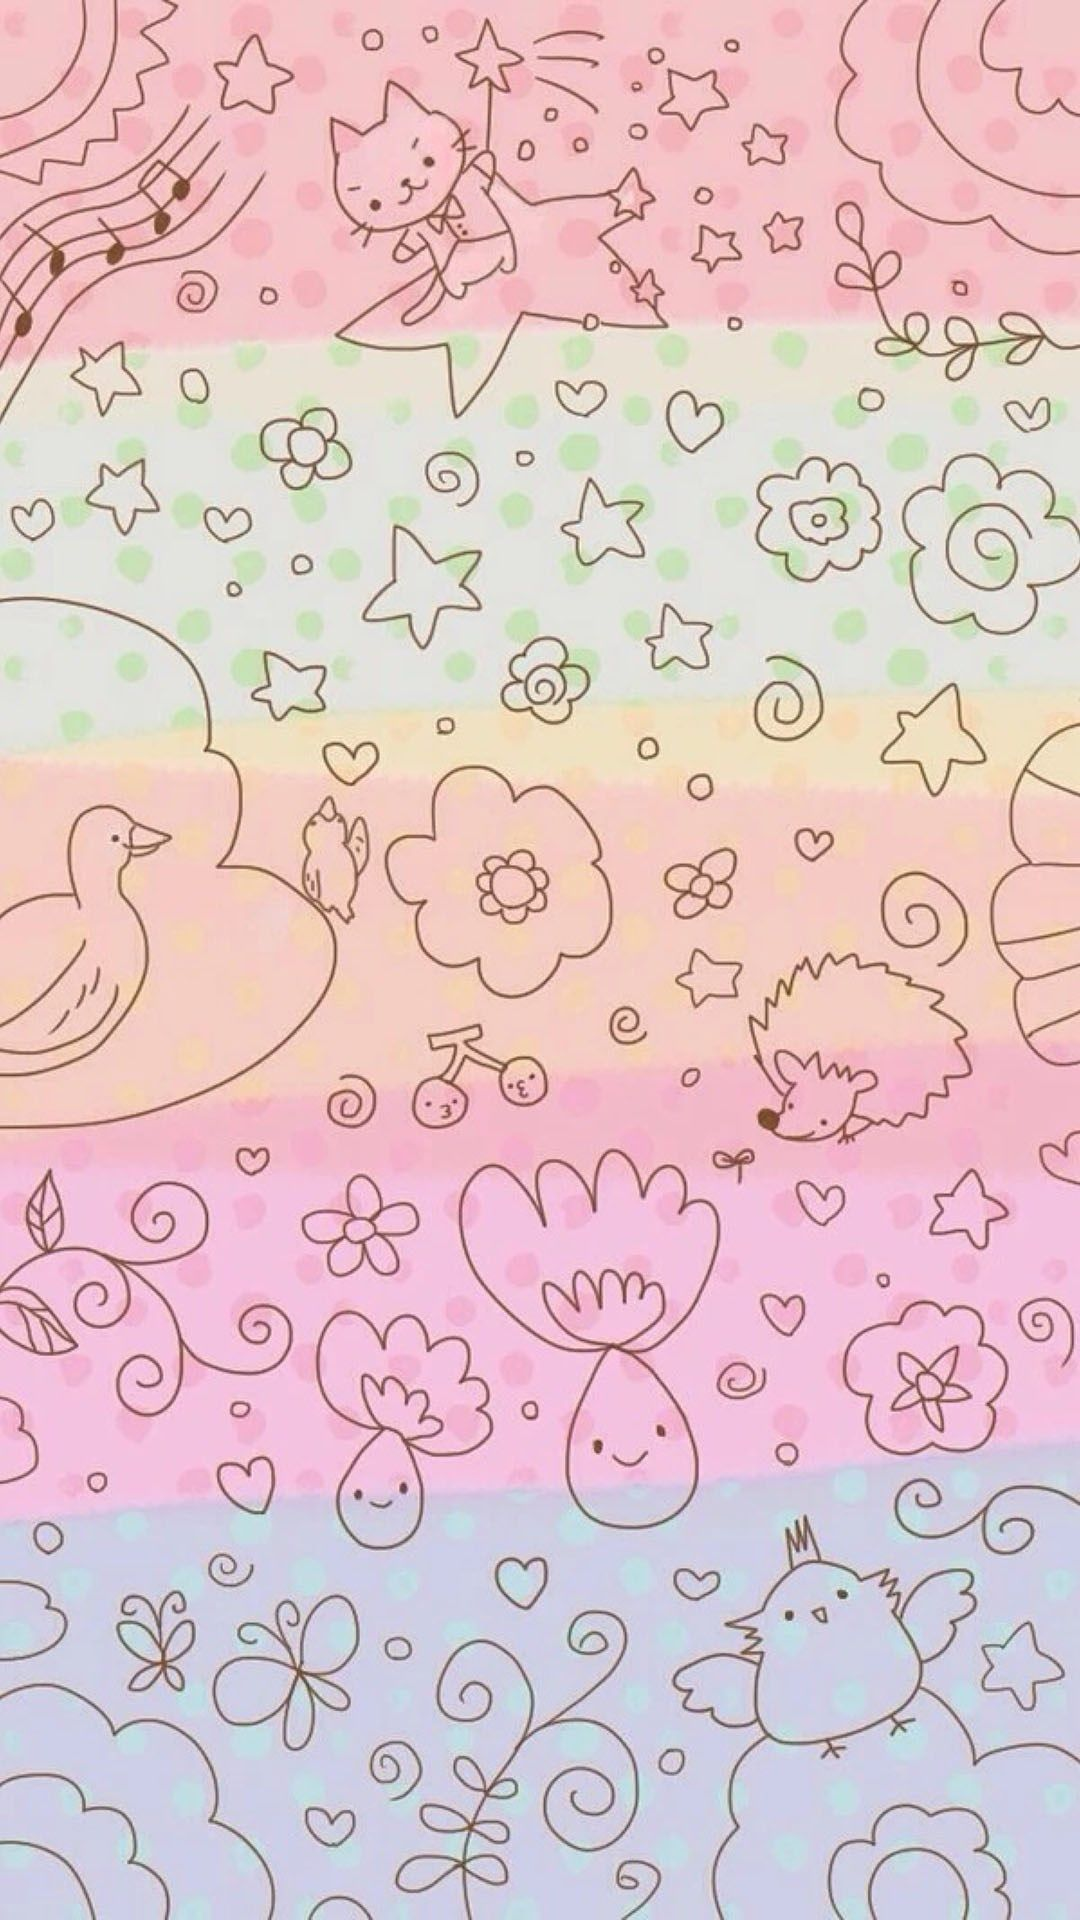 Dreamy Anime Cute Kitten Pattern Painting Background